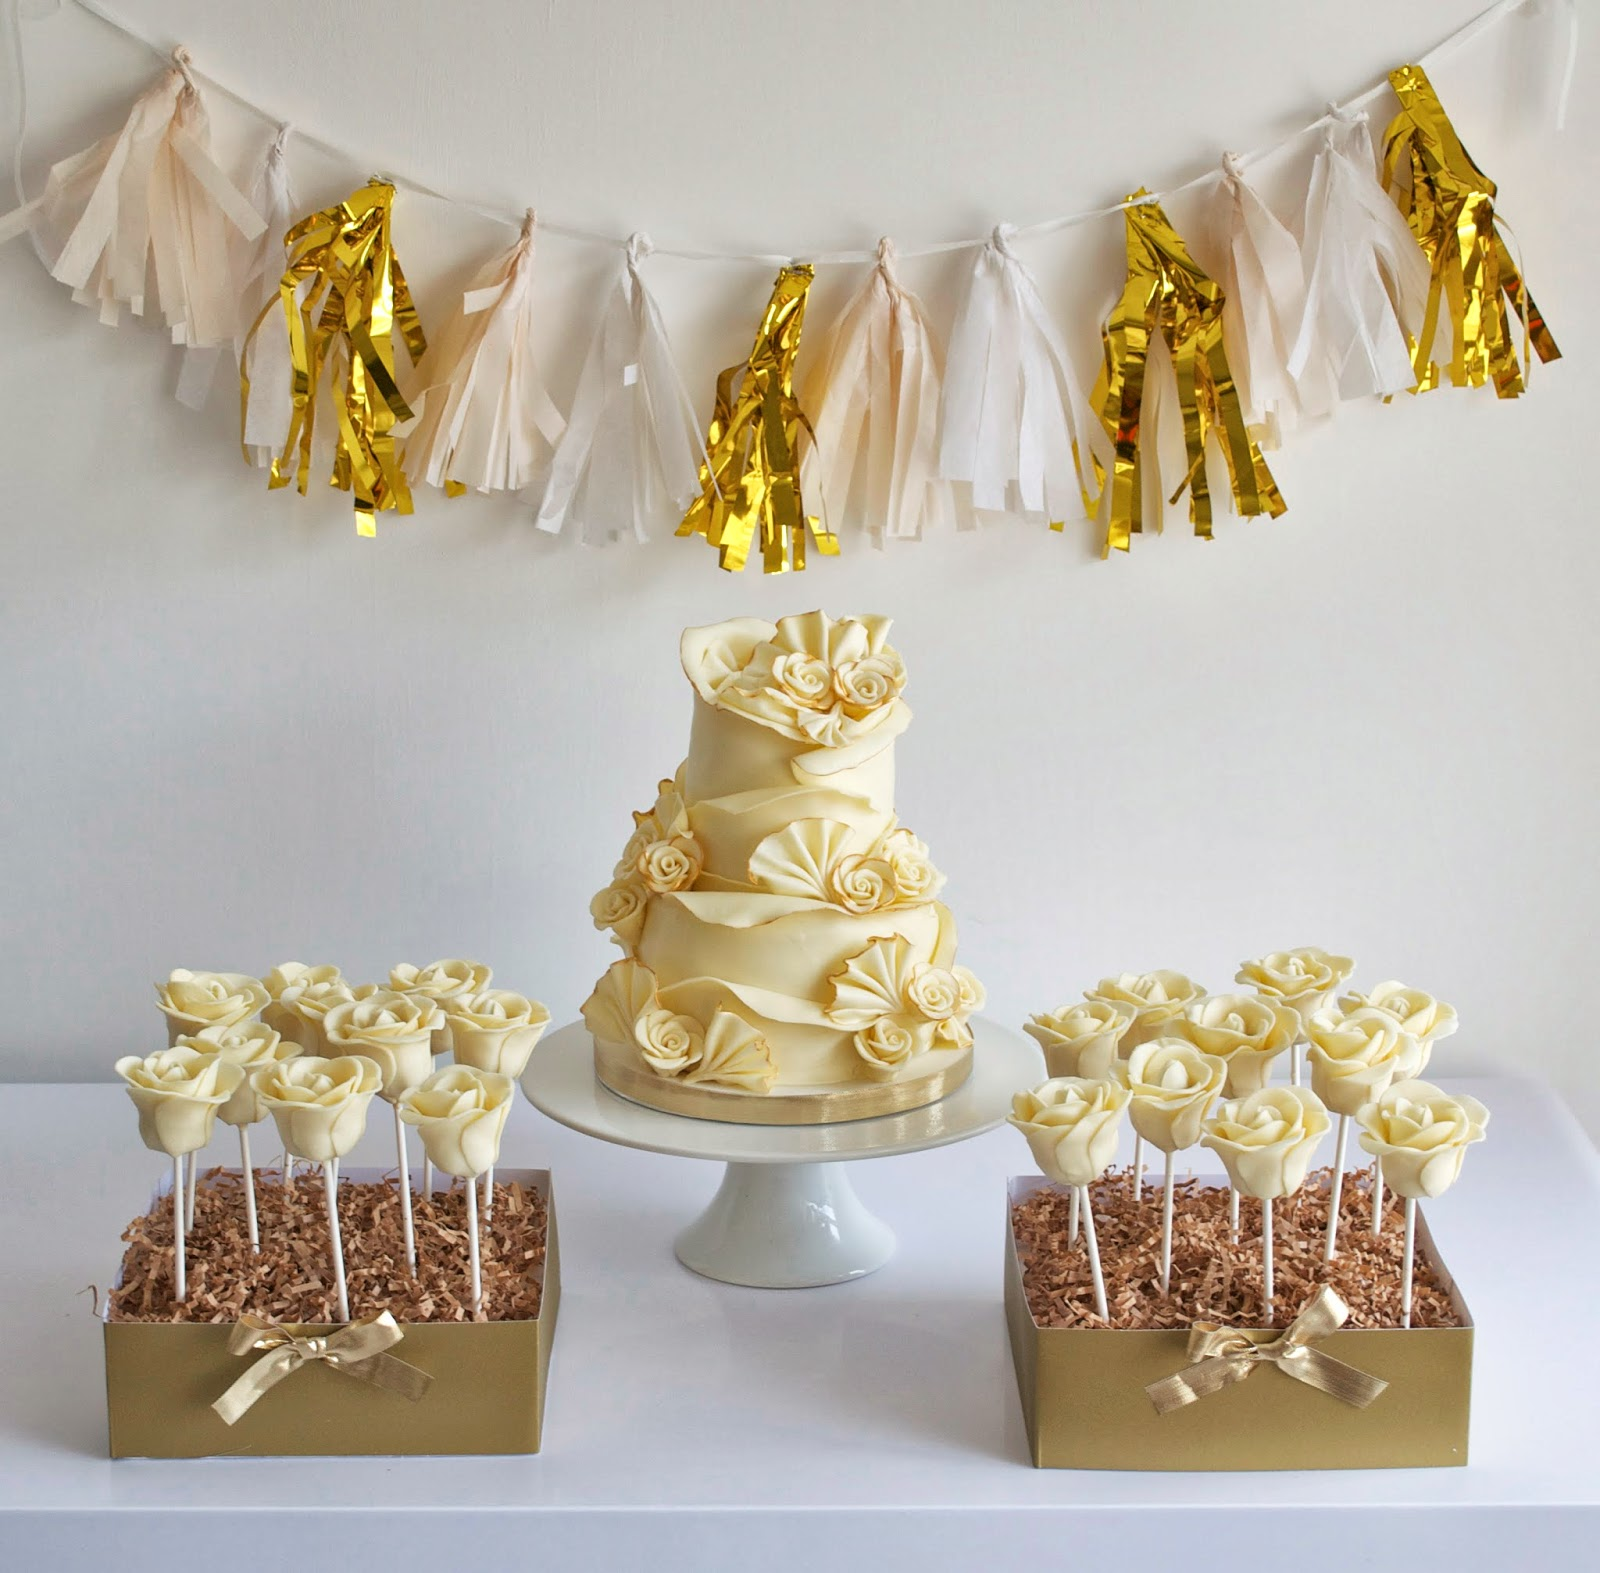 ... chocolate wedding cup cake s white chocolate cake or cup cake s white